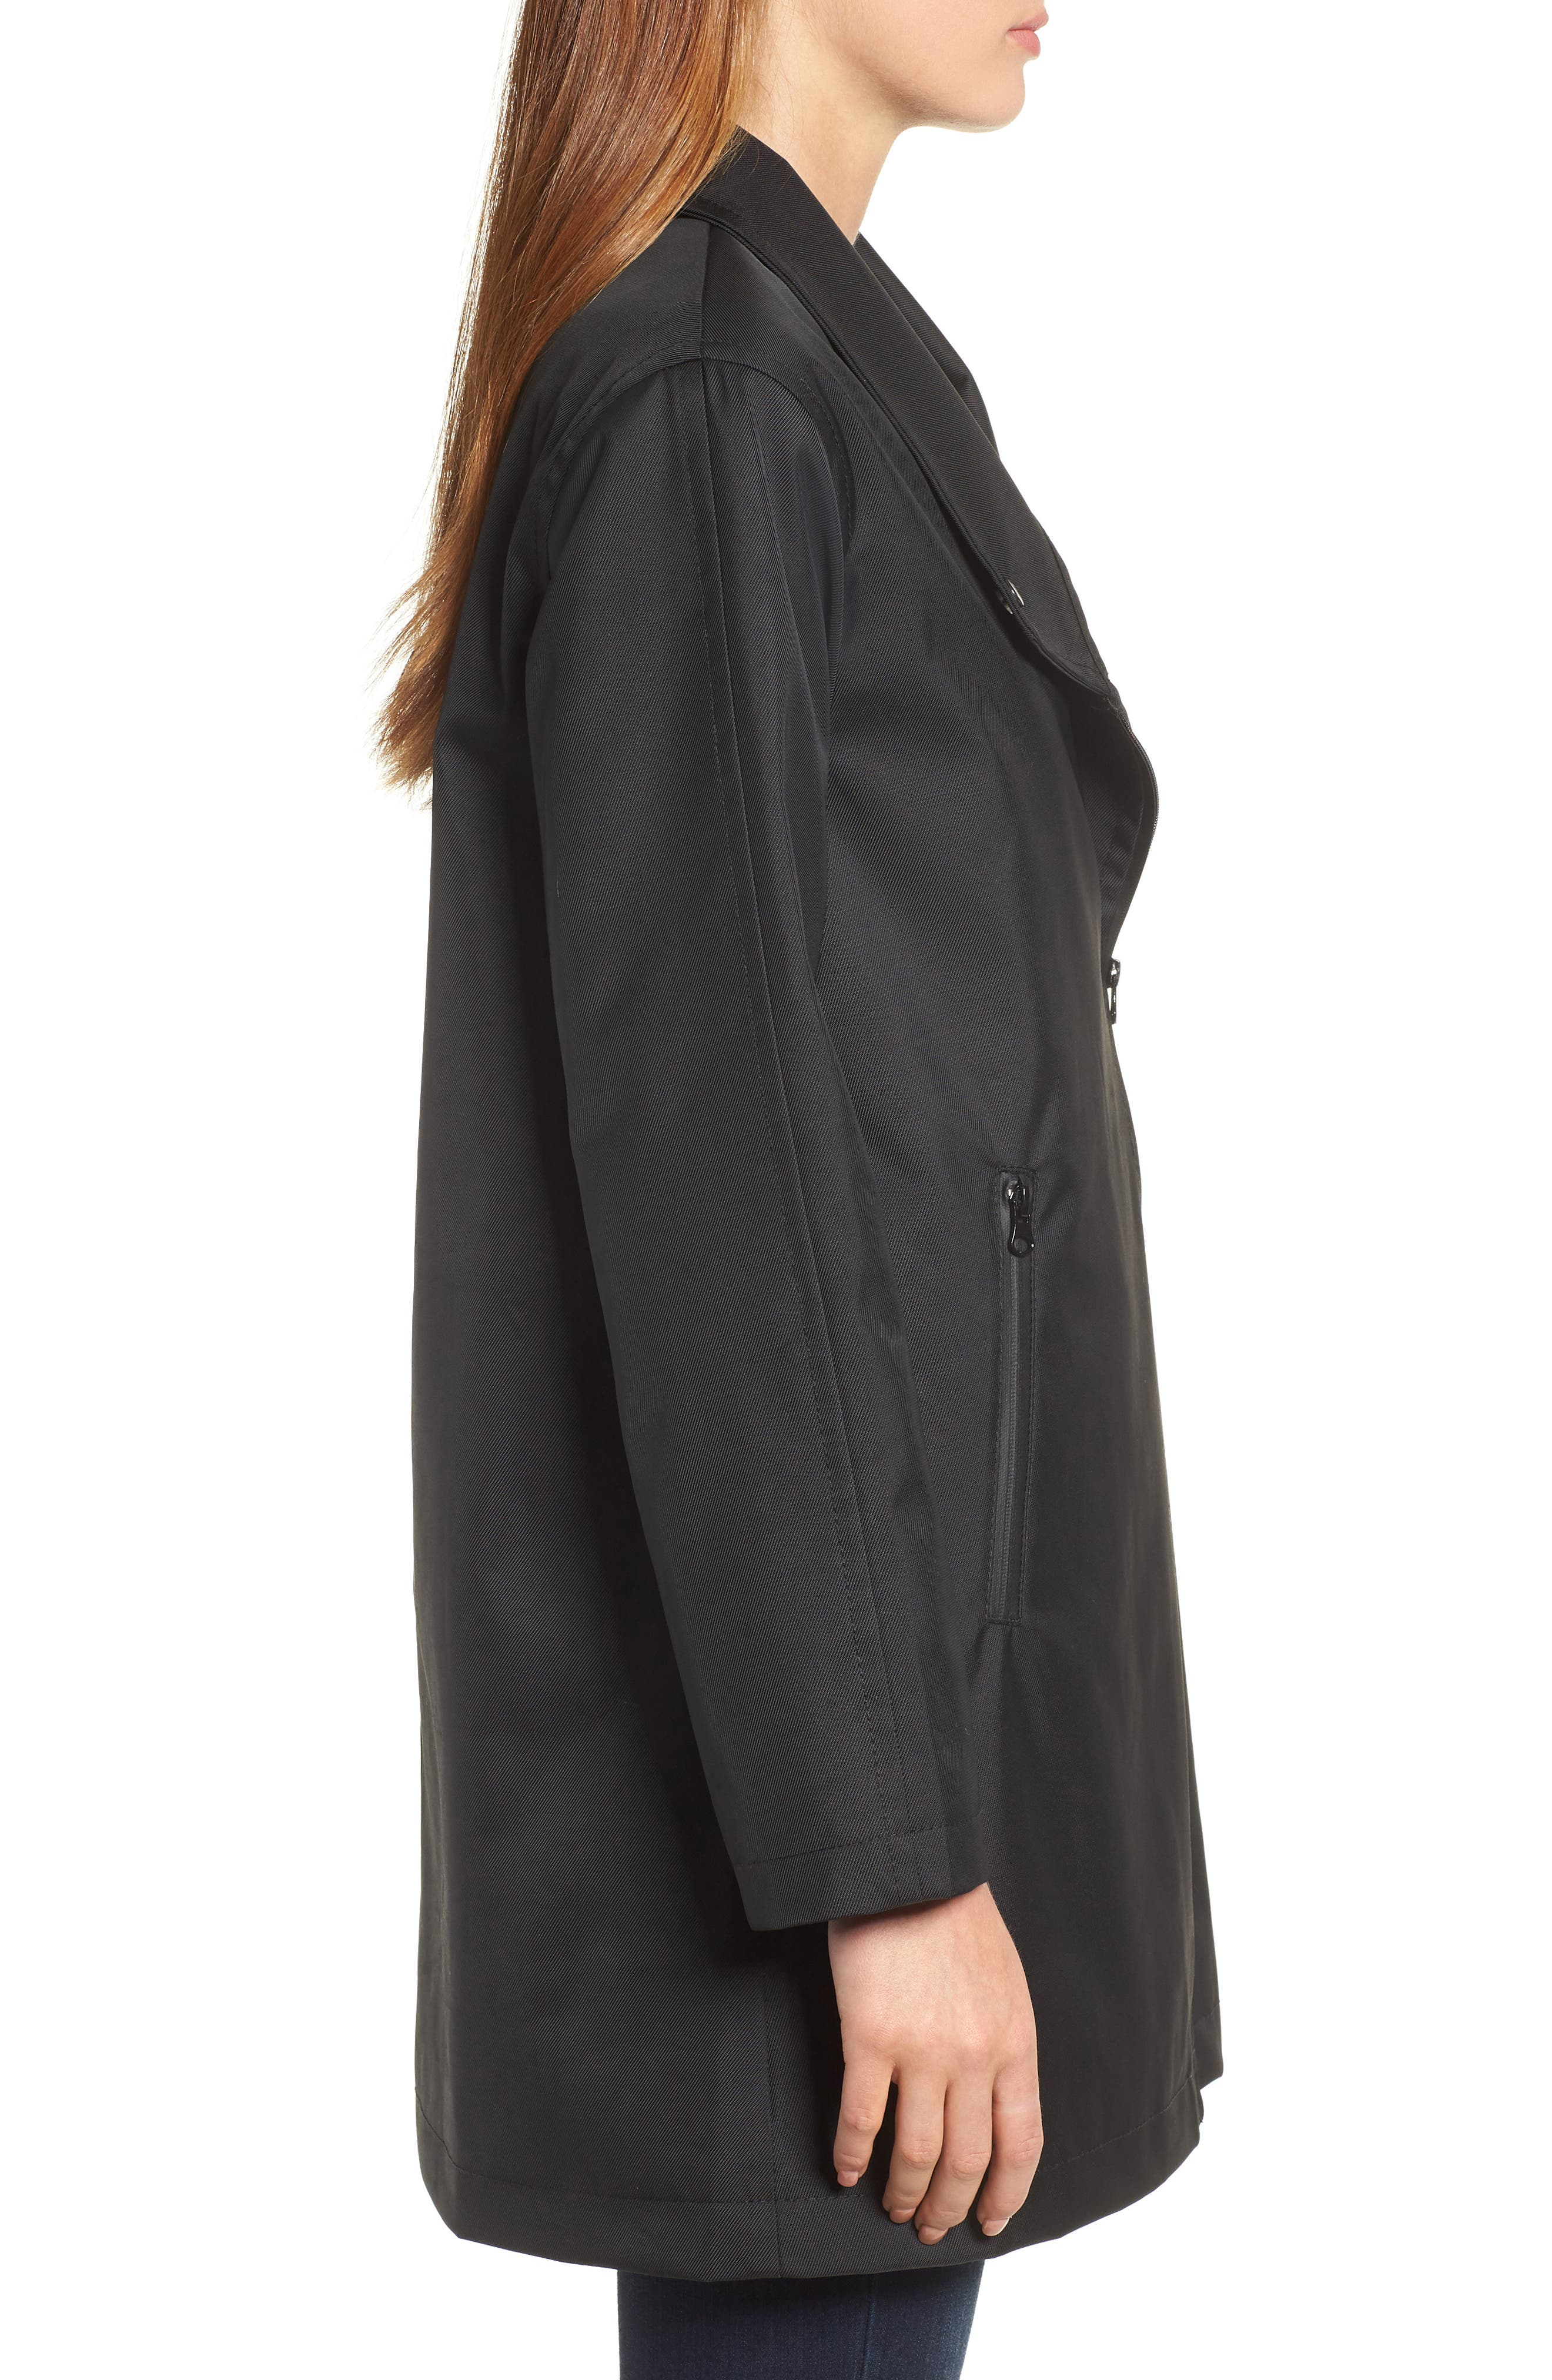 Tenley Asymmetrical Collar Coat,                             Alternate thumbnail 3, color,                             BLACK